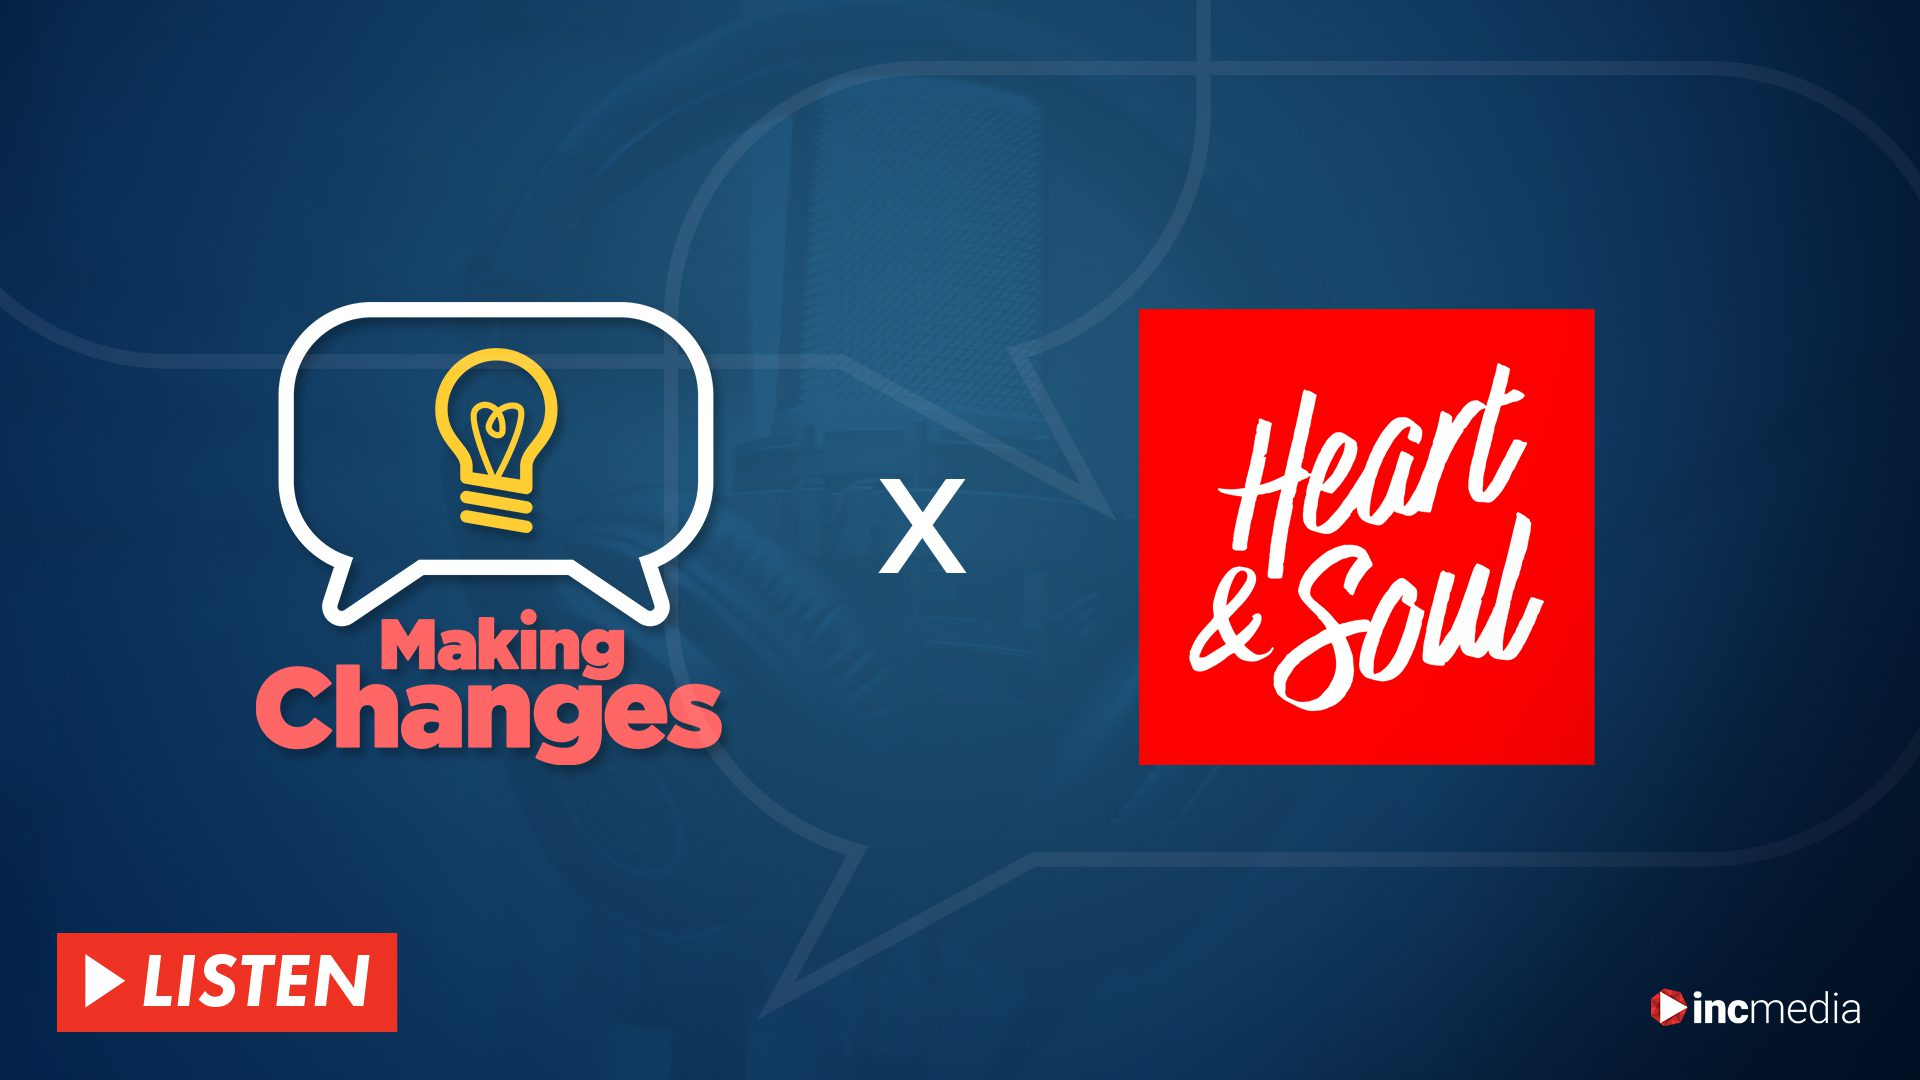 Making Changes and Heart and Soul logos on blue background